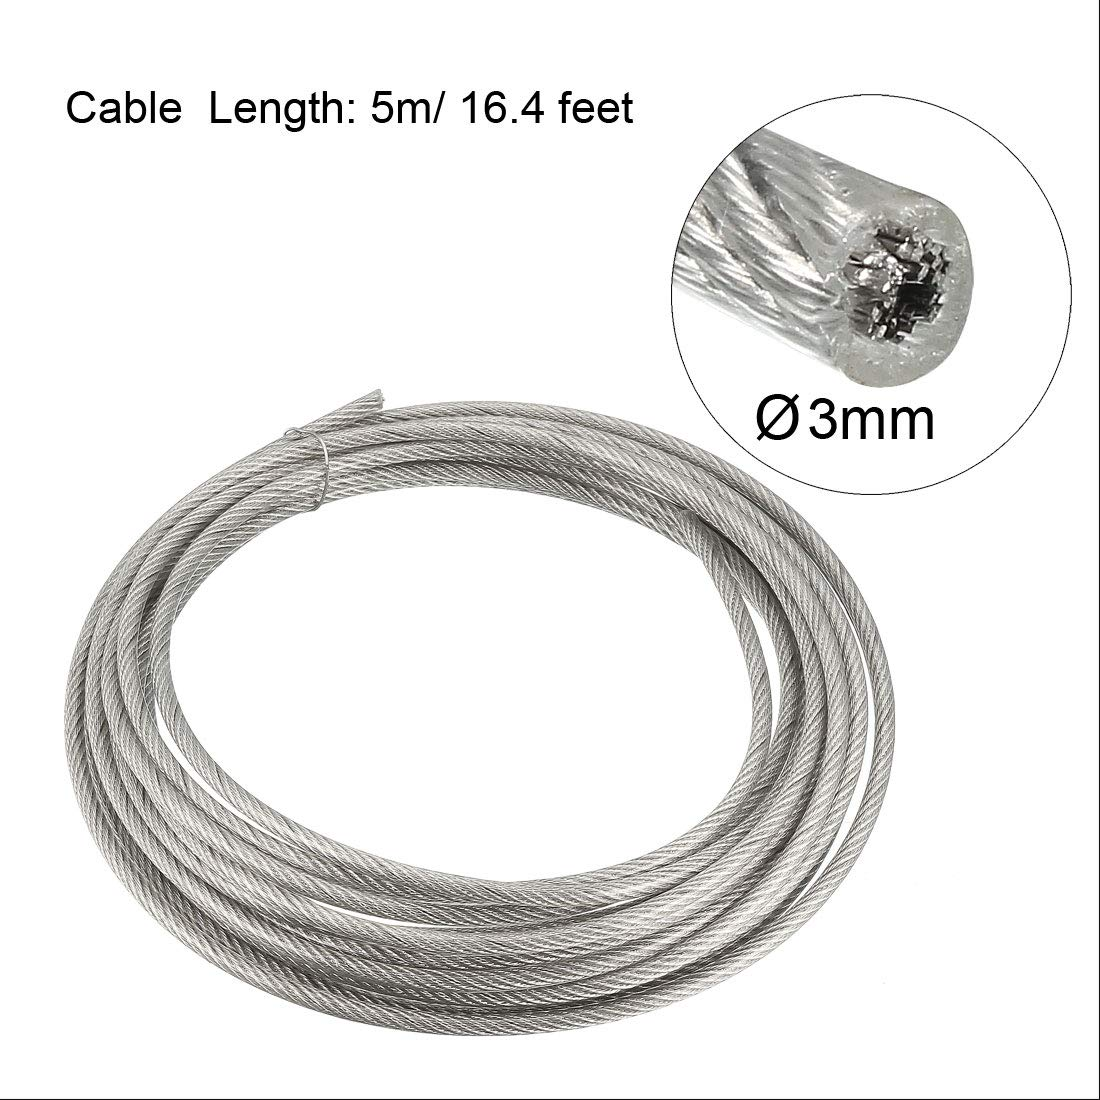 uxcell Stainless Steel Wire Rope Cable 5mm 0.2 inch Dia 32.8ft 10m Length 6 Gauge 304 Grade PVC Coated for Hoist Lifting Grinder Pulley Wheel